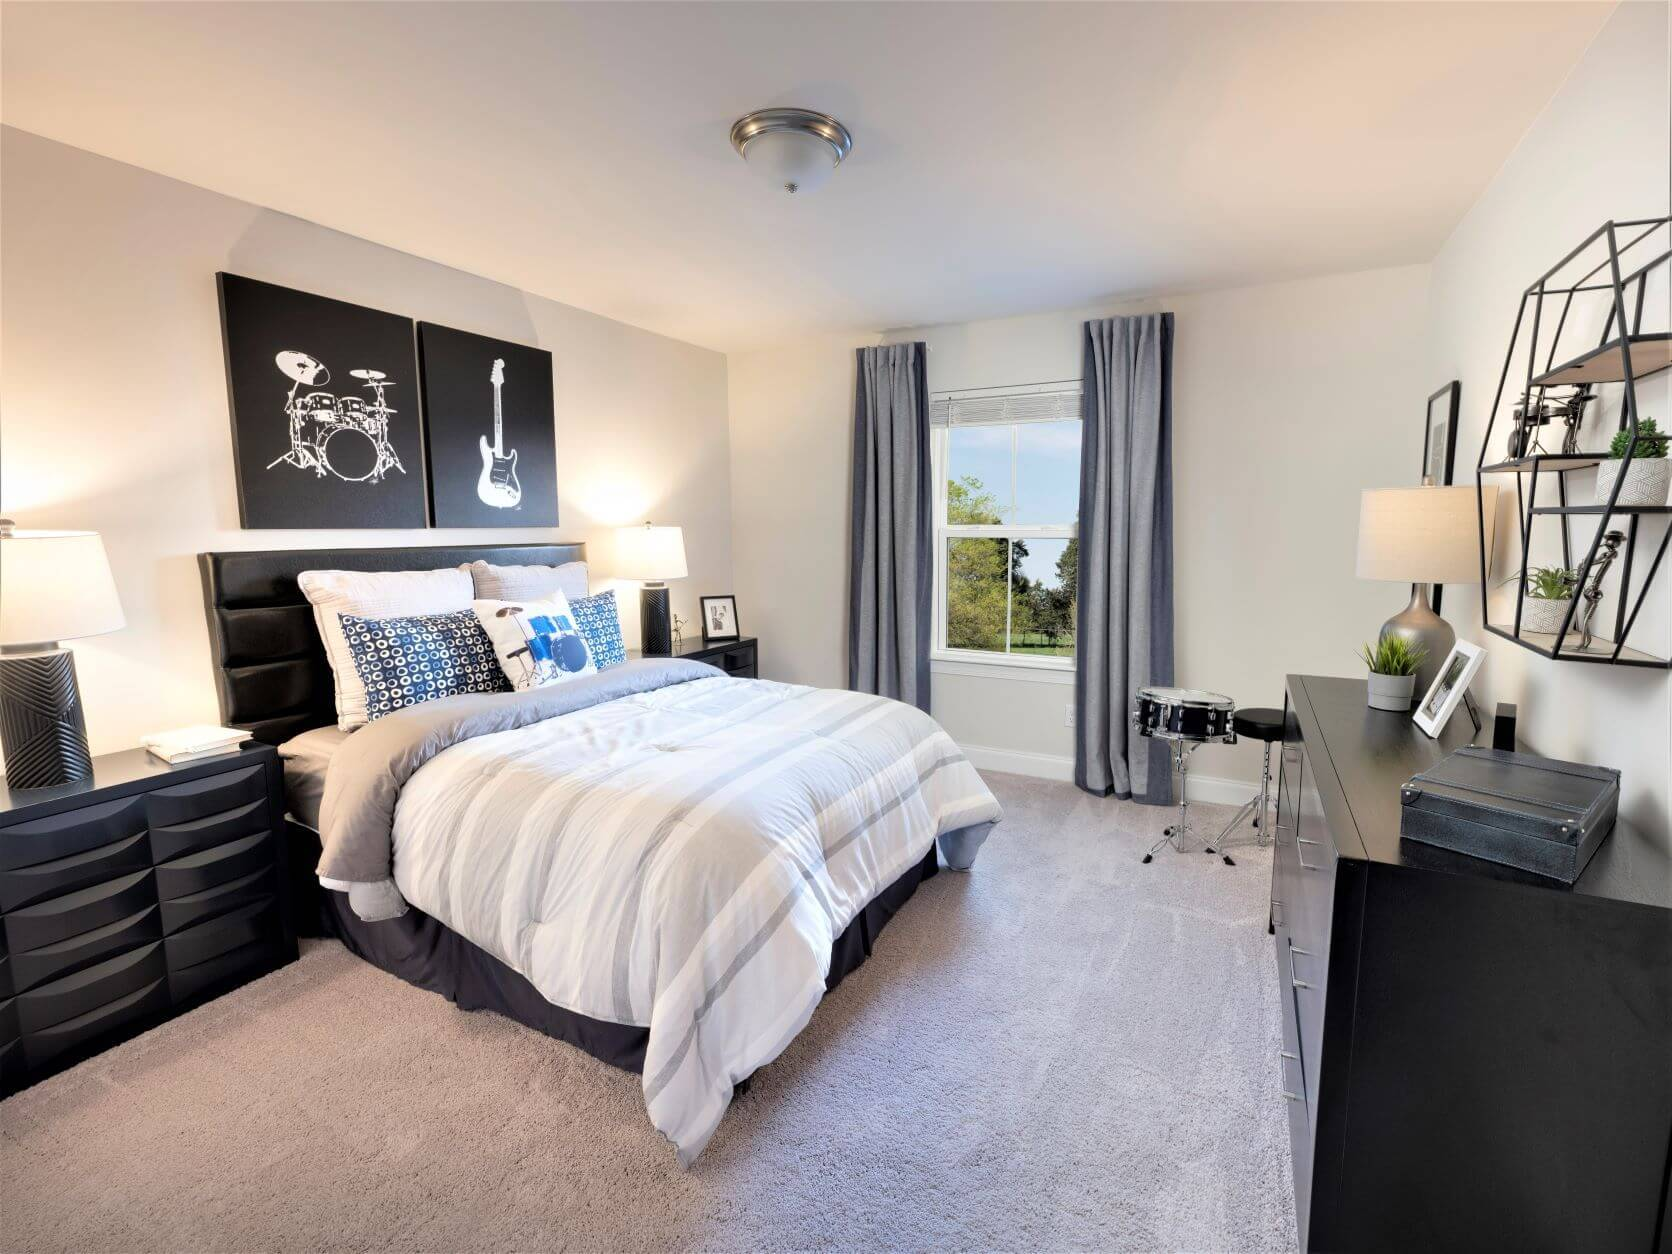 Bedroom featured in the Beckett By Meritage Homes in Nashville, TN